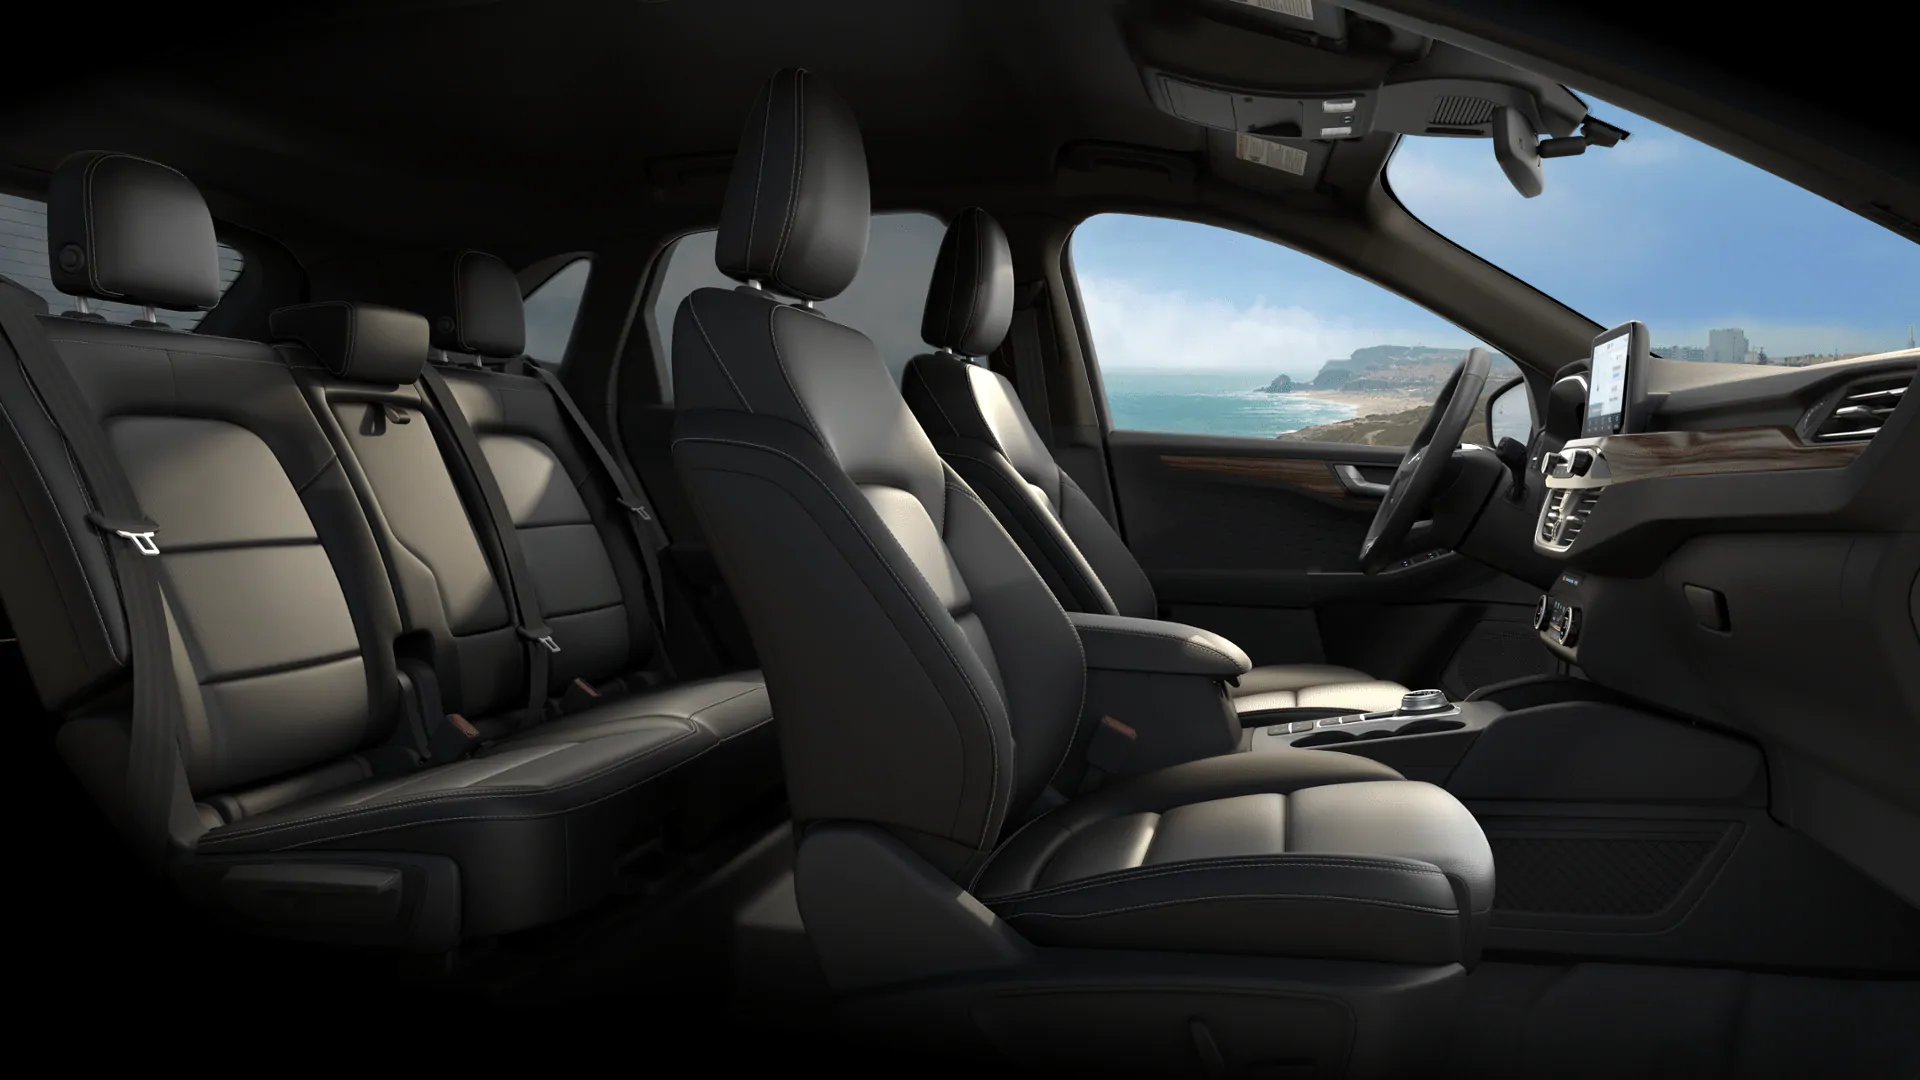 2020 Ford Escape Interior Trim Material And Color Options Akins Ford